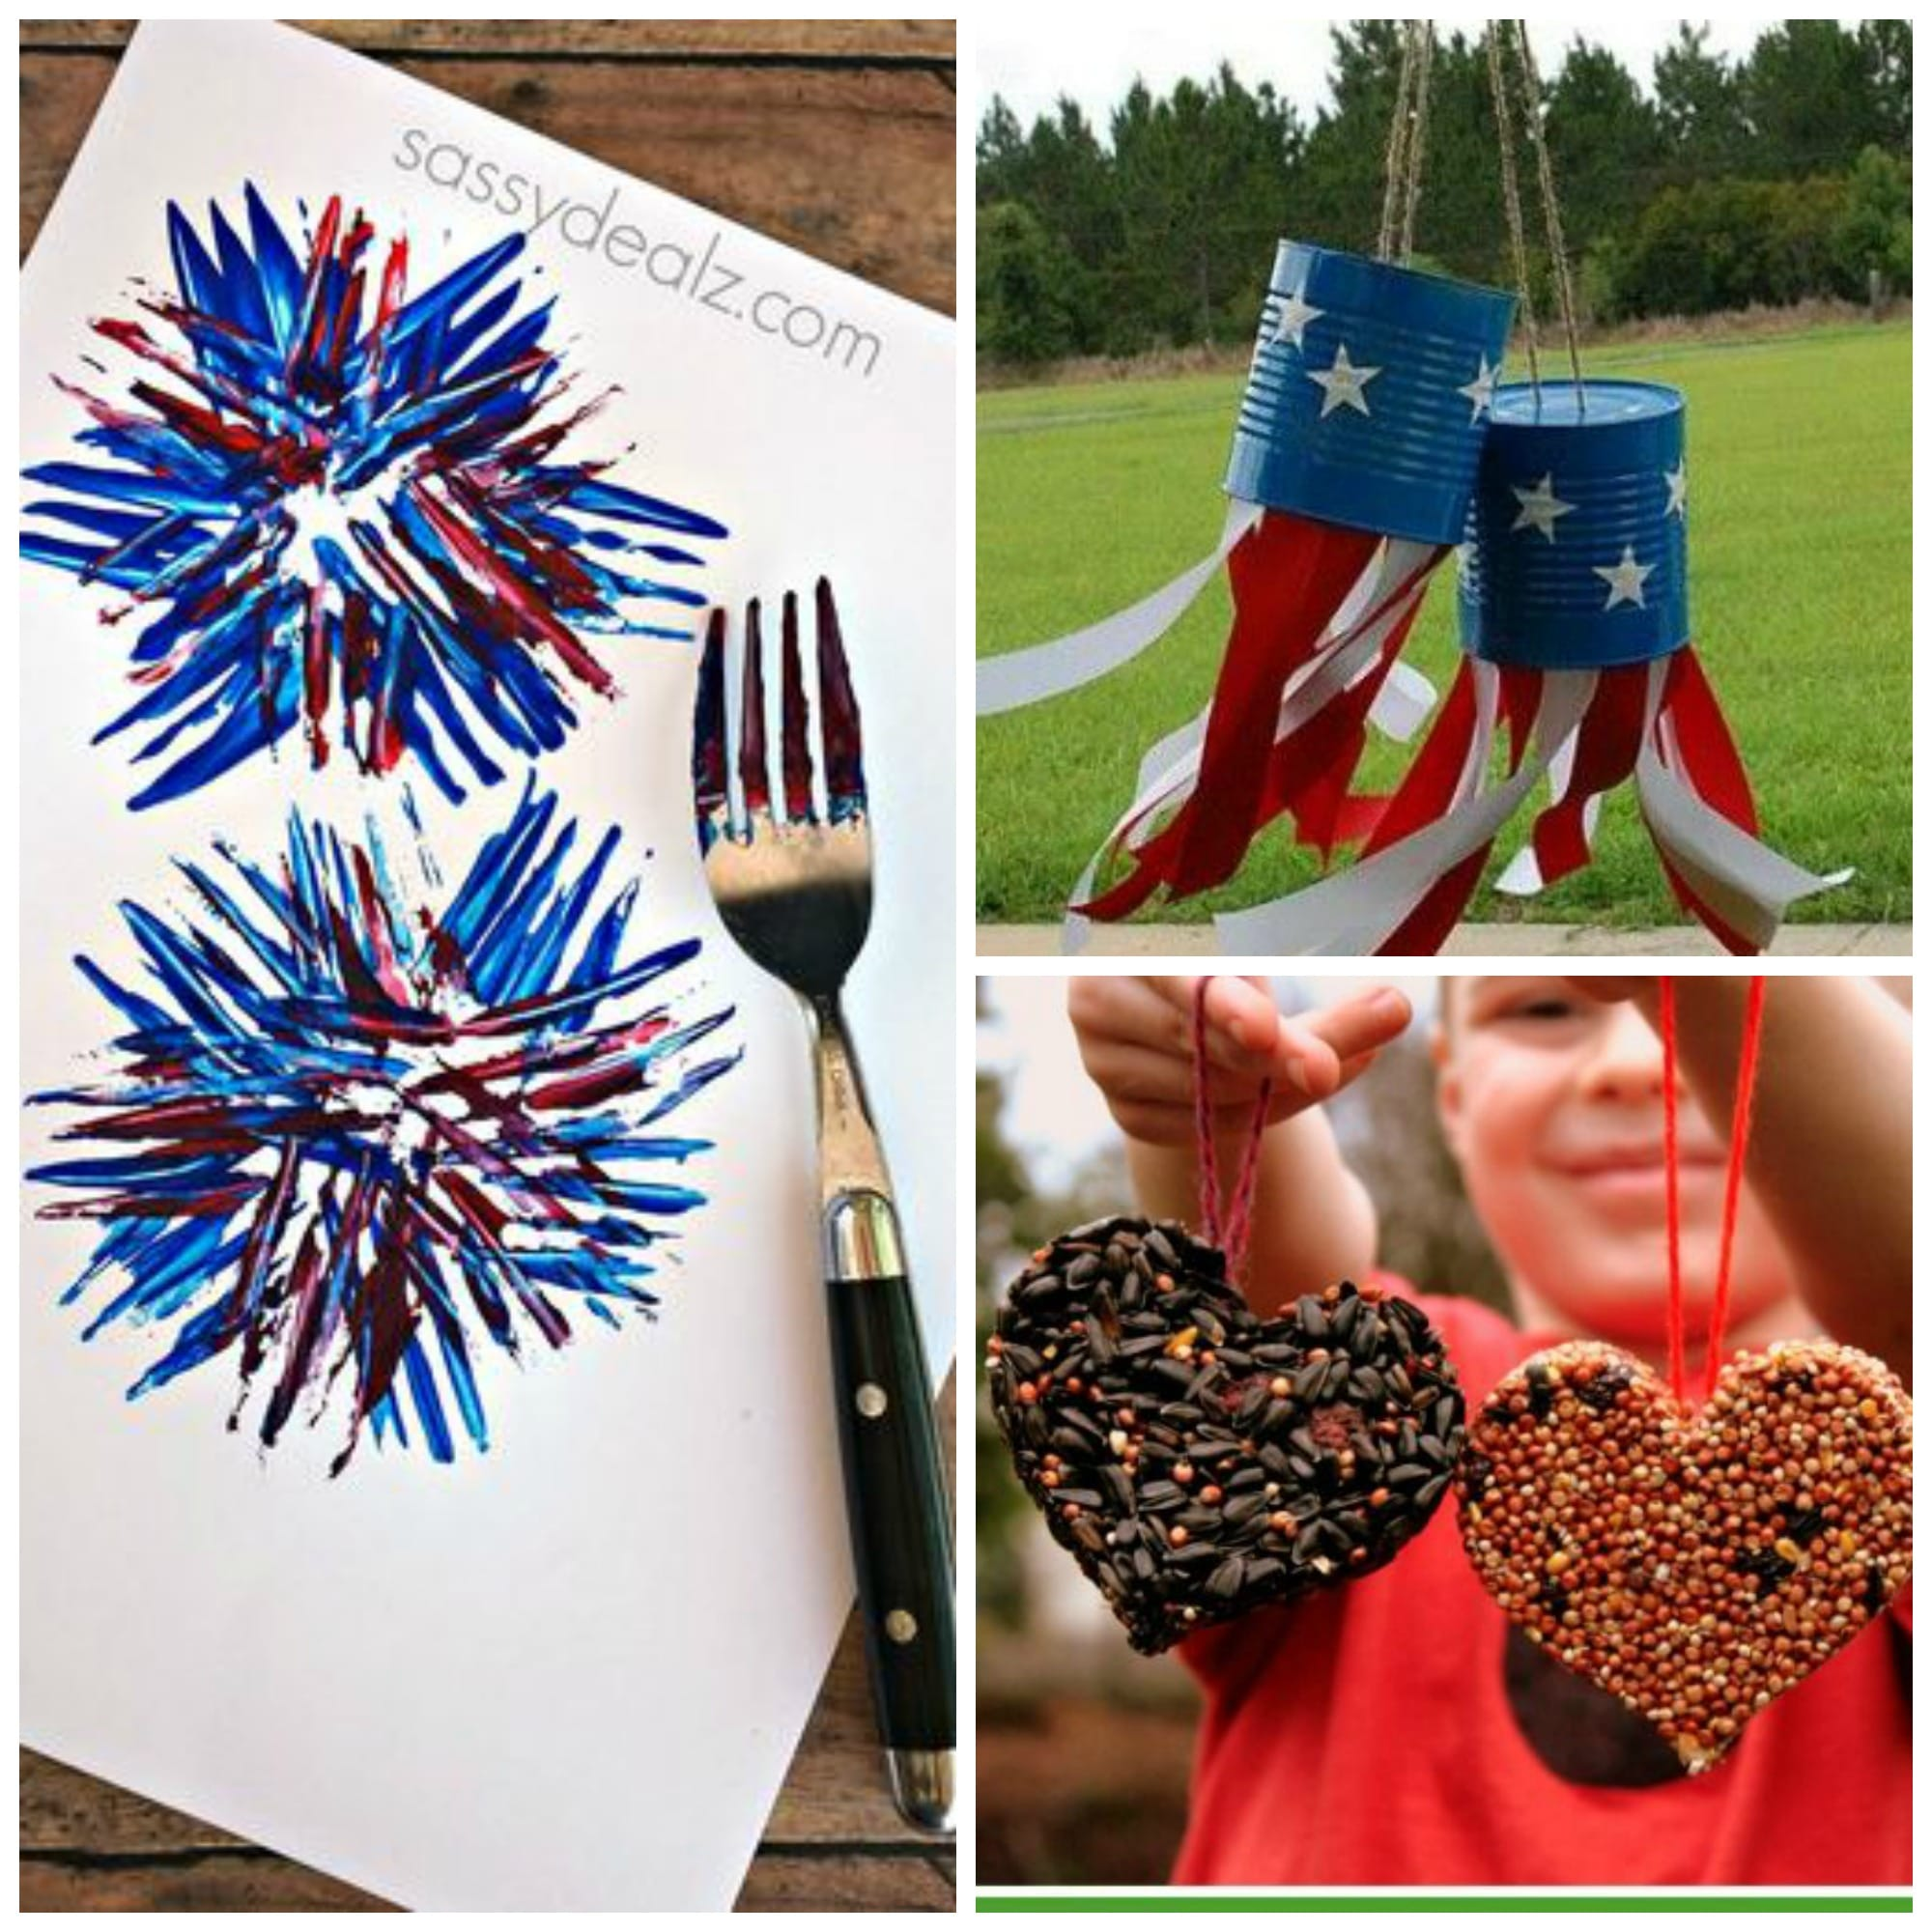 Kids craft ideas from Pinterest - Red Ted Art's Blog - photo#32